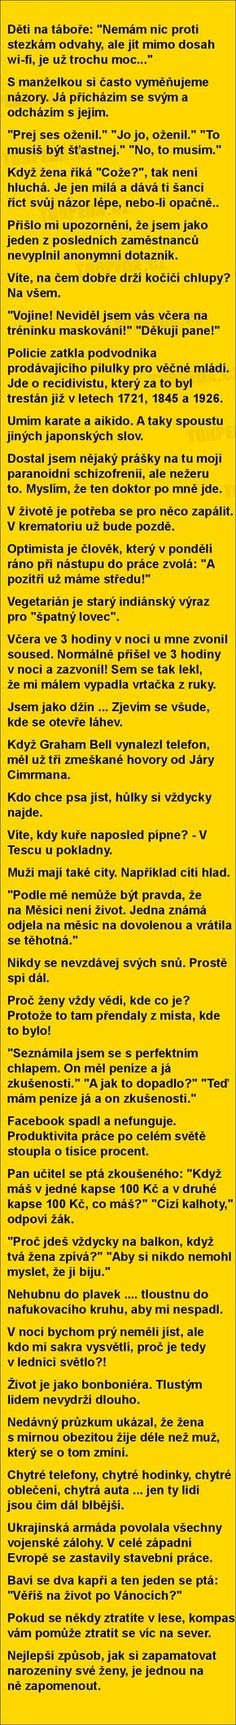 vtipné obrázky, vtipy a videa Good Jokes, Funny Jokes, Try Not To Laugh, Jokes Quotes, Picture Quotes, The Funny, Quotations, Haha, Laughter